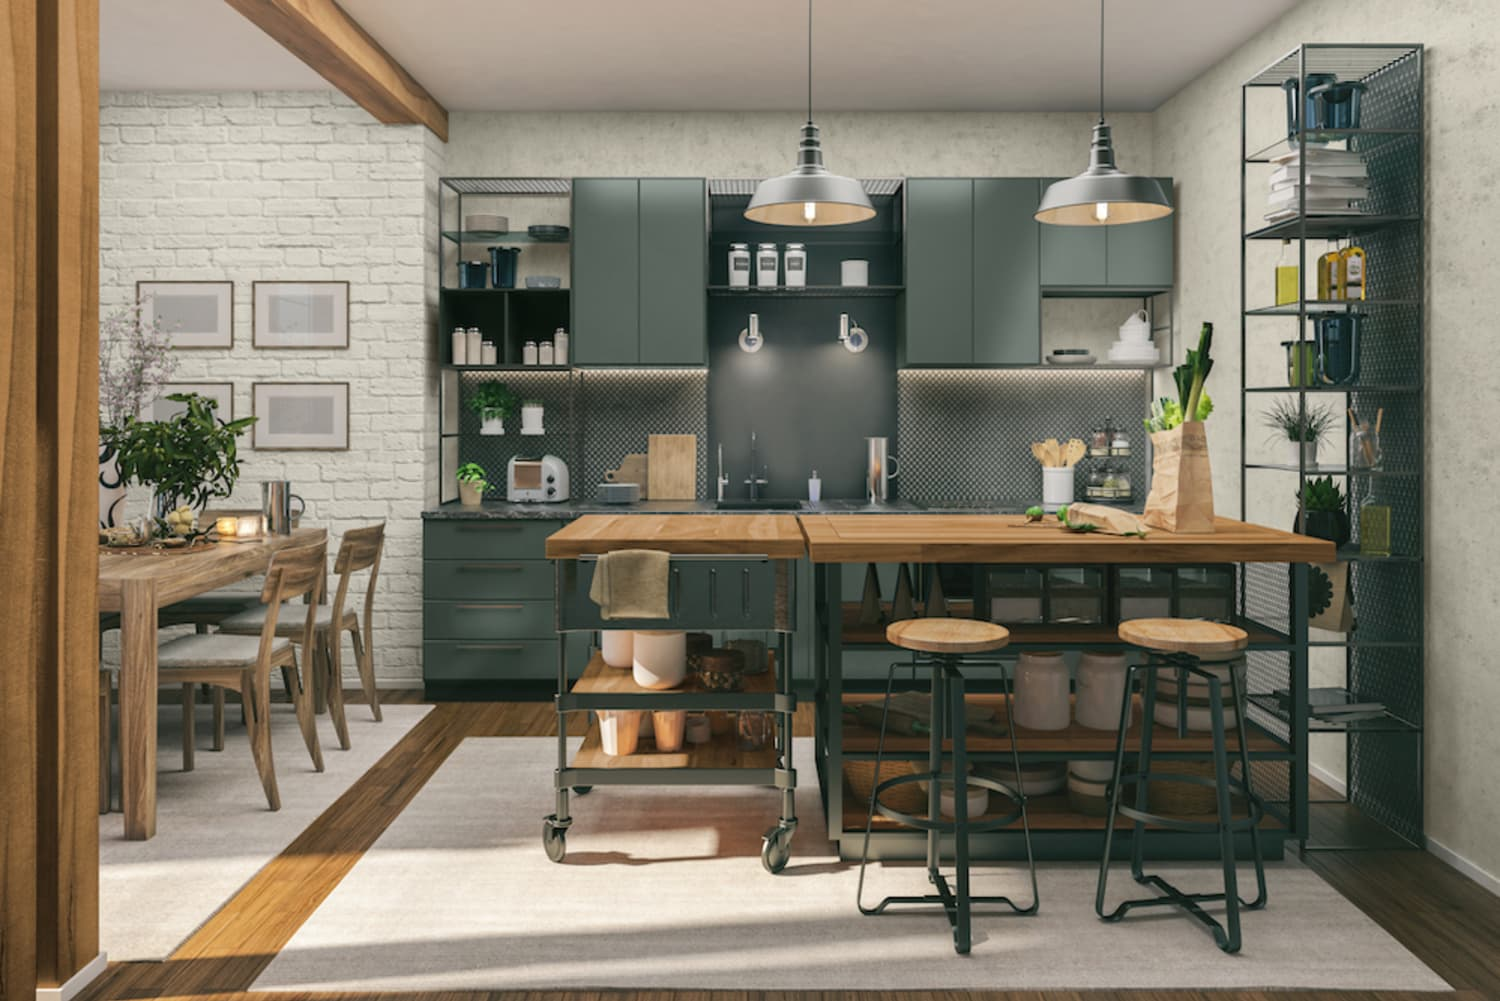 Joanna Gaines Released Her 4 Favorite Kitchen Color Combinations For Fall